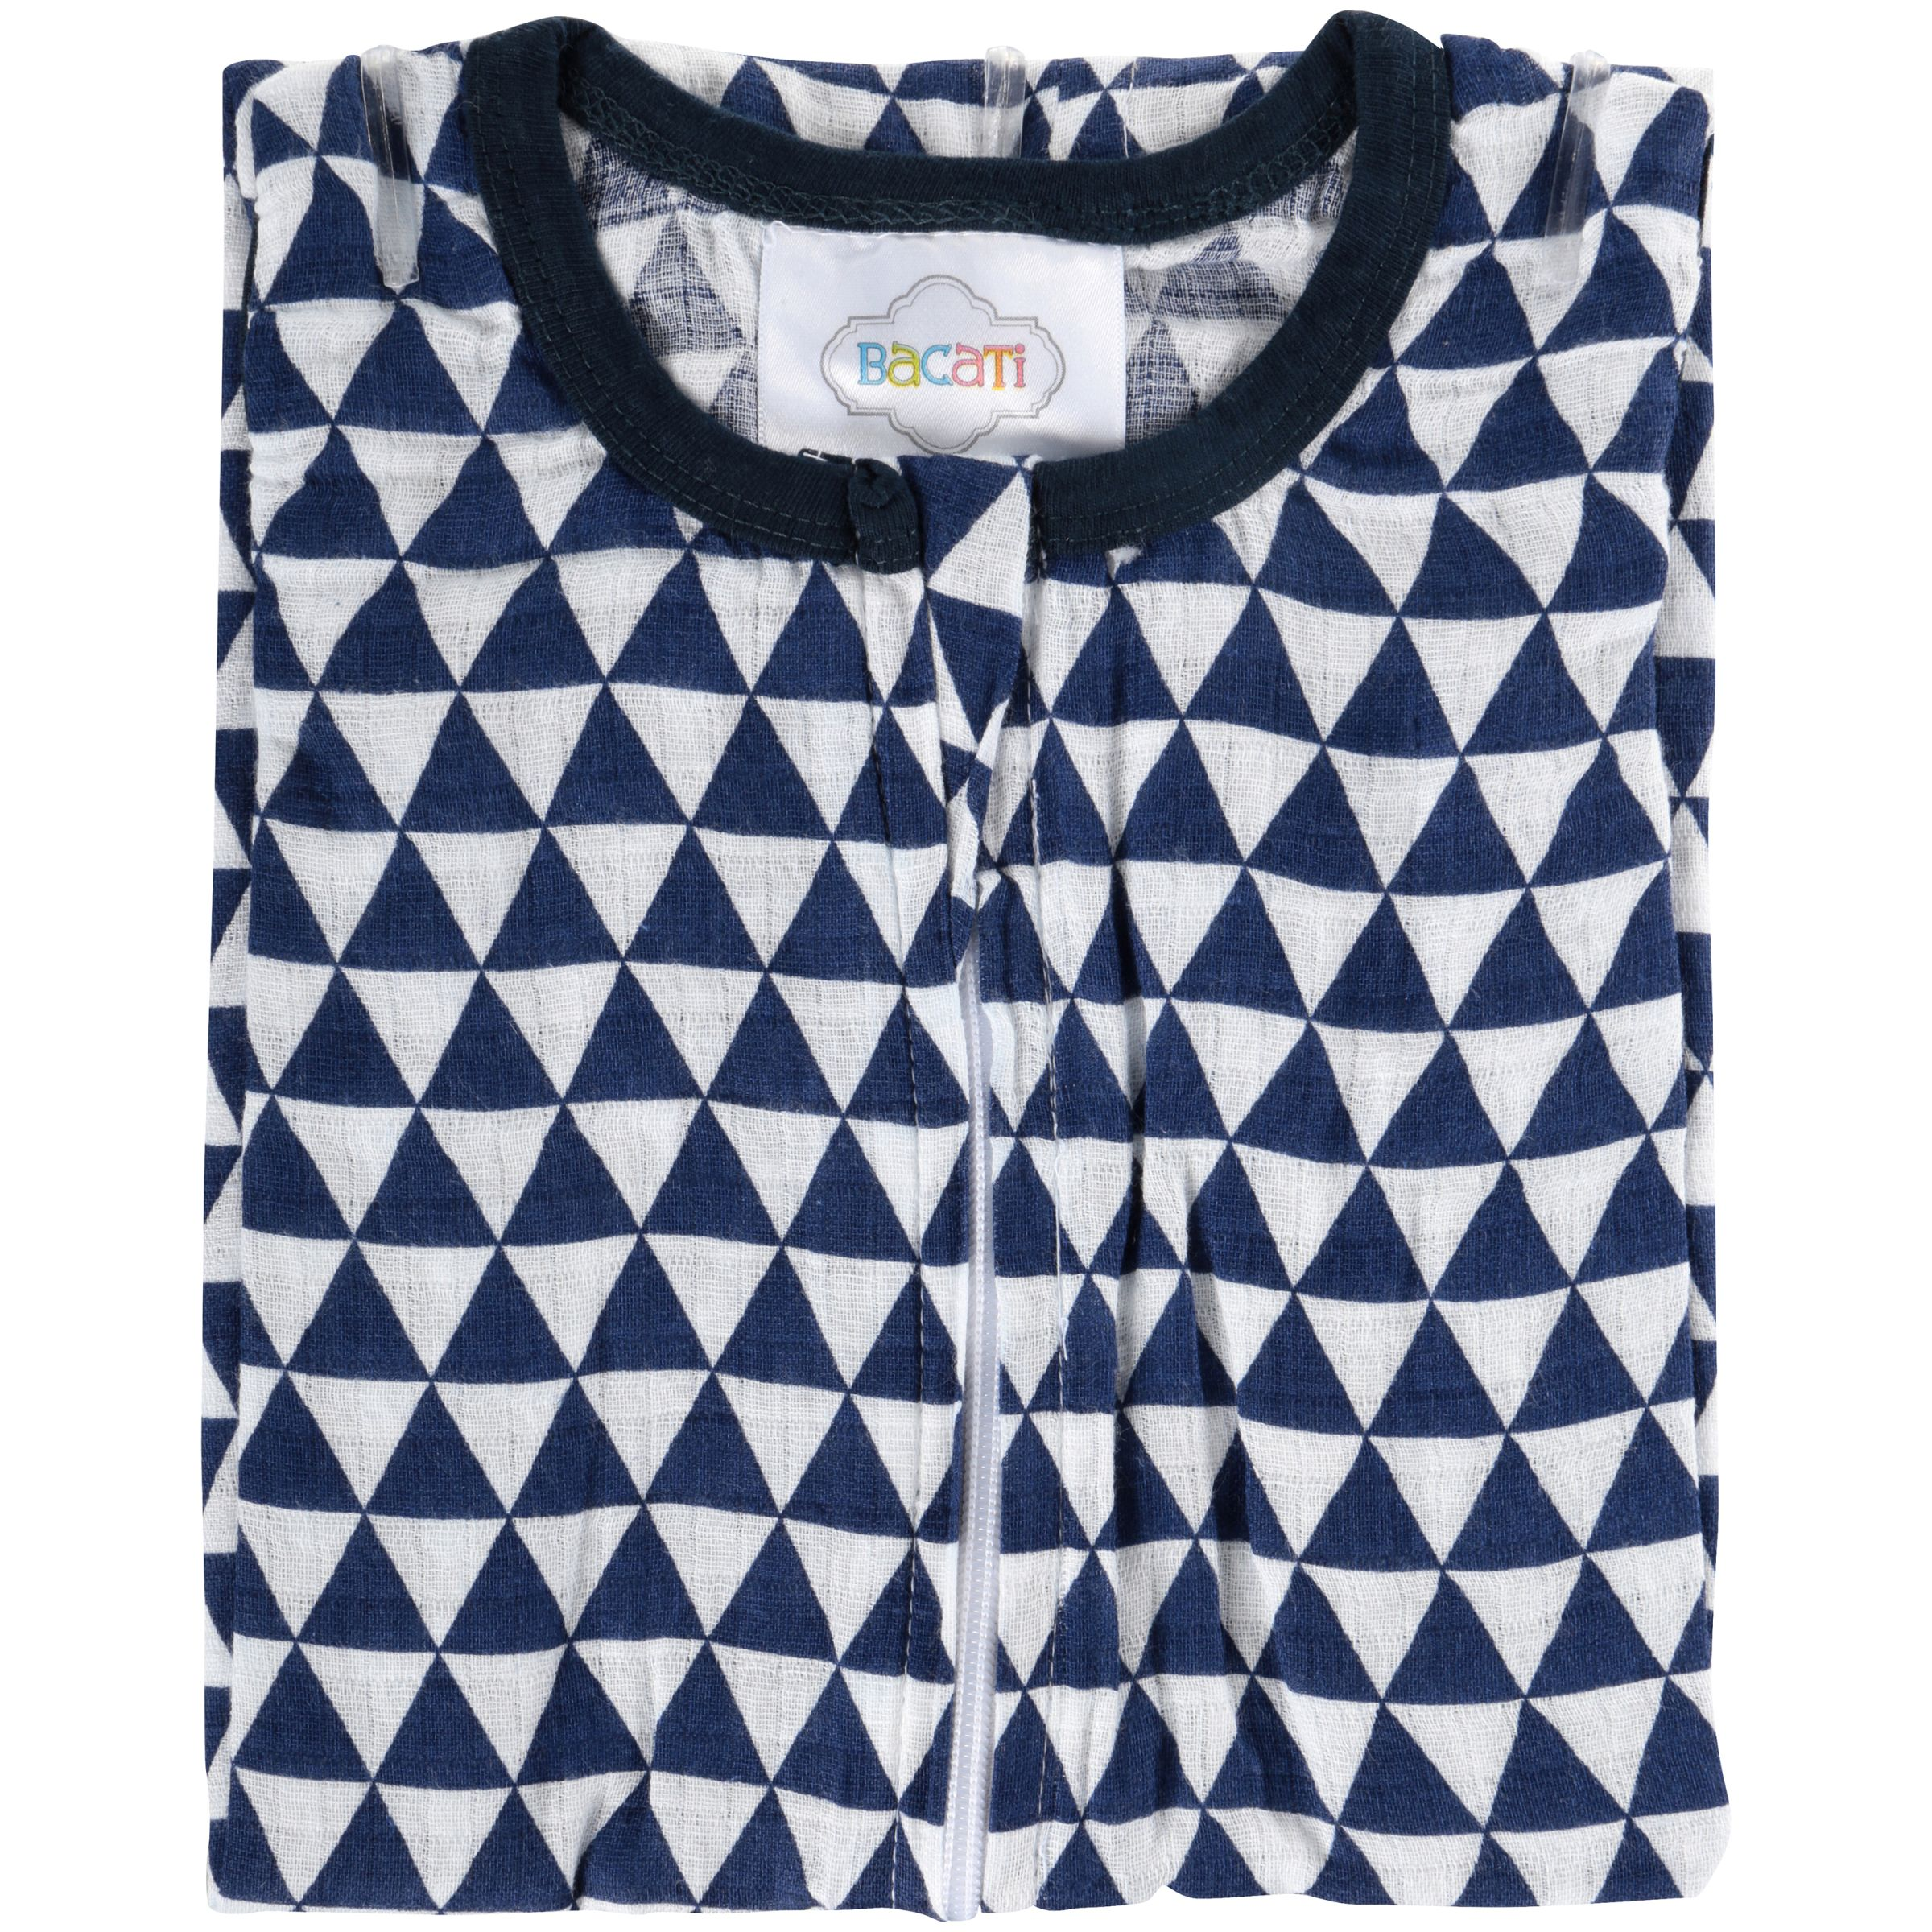 Bacati Newborn Wearable Blanket Tribal Navy Triangles